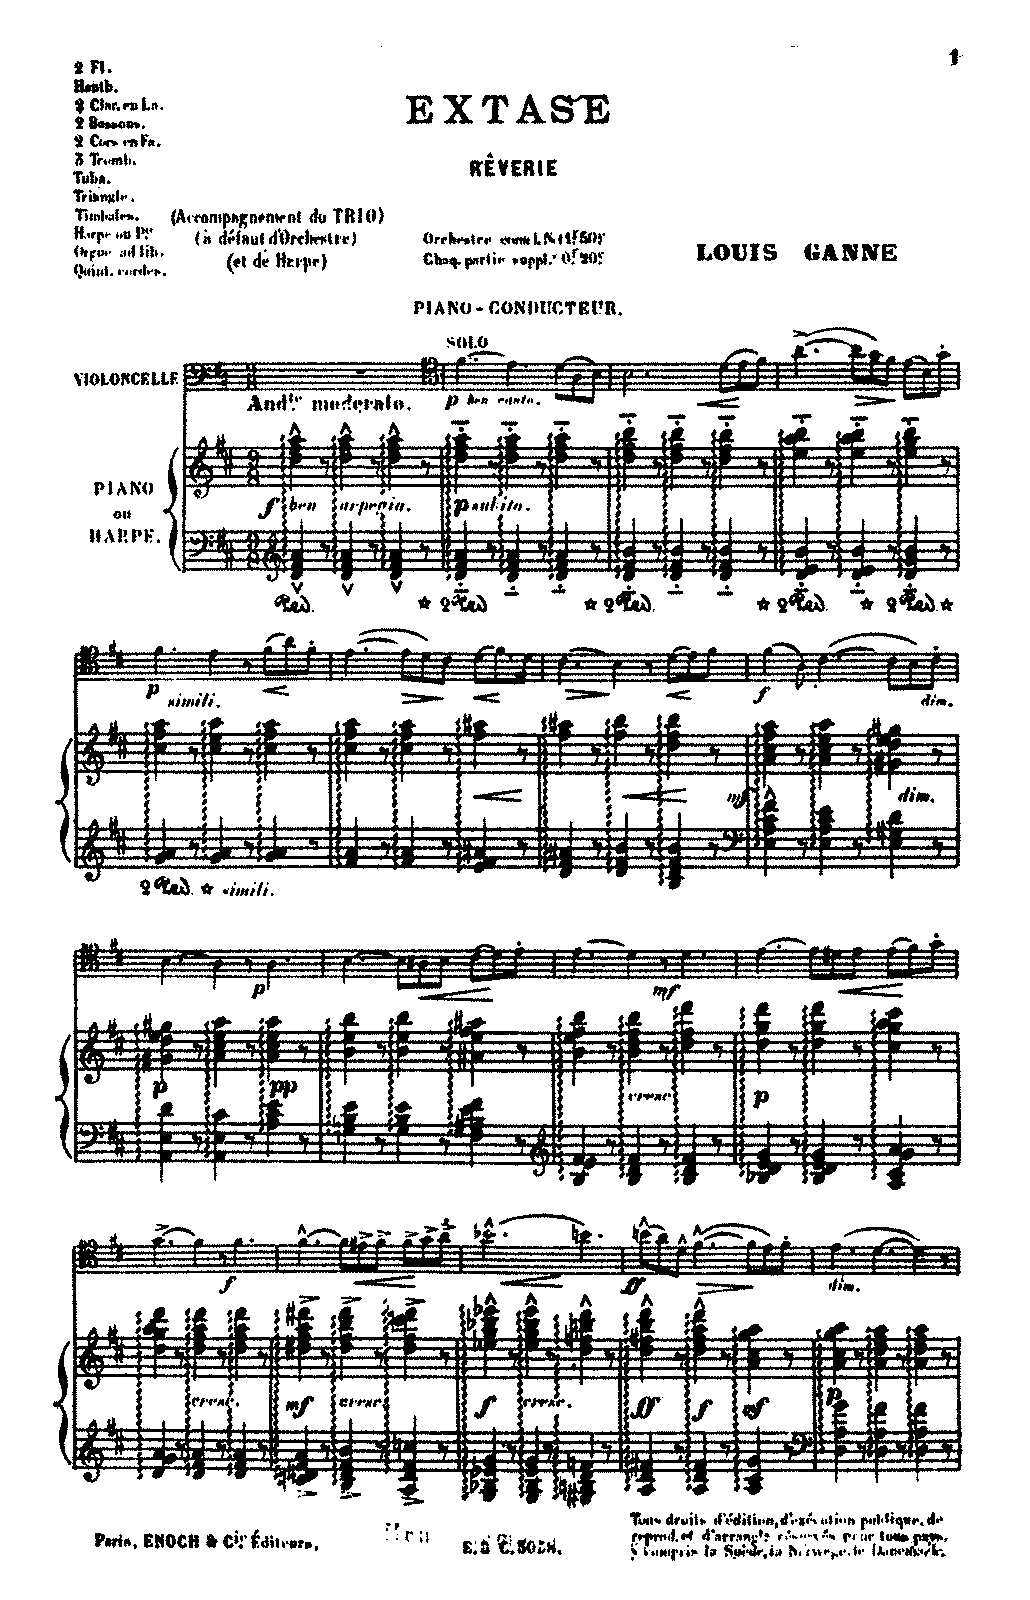 PMLP211385-Ganne - Extase Reverie (Salon Orch) 00 Piano-Conductor.pdf